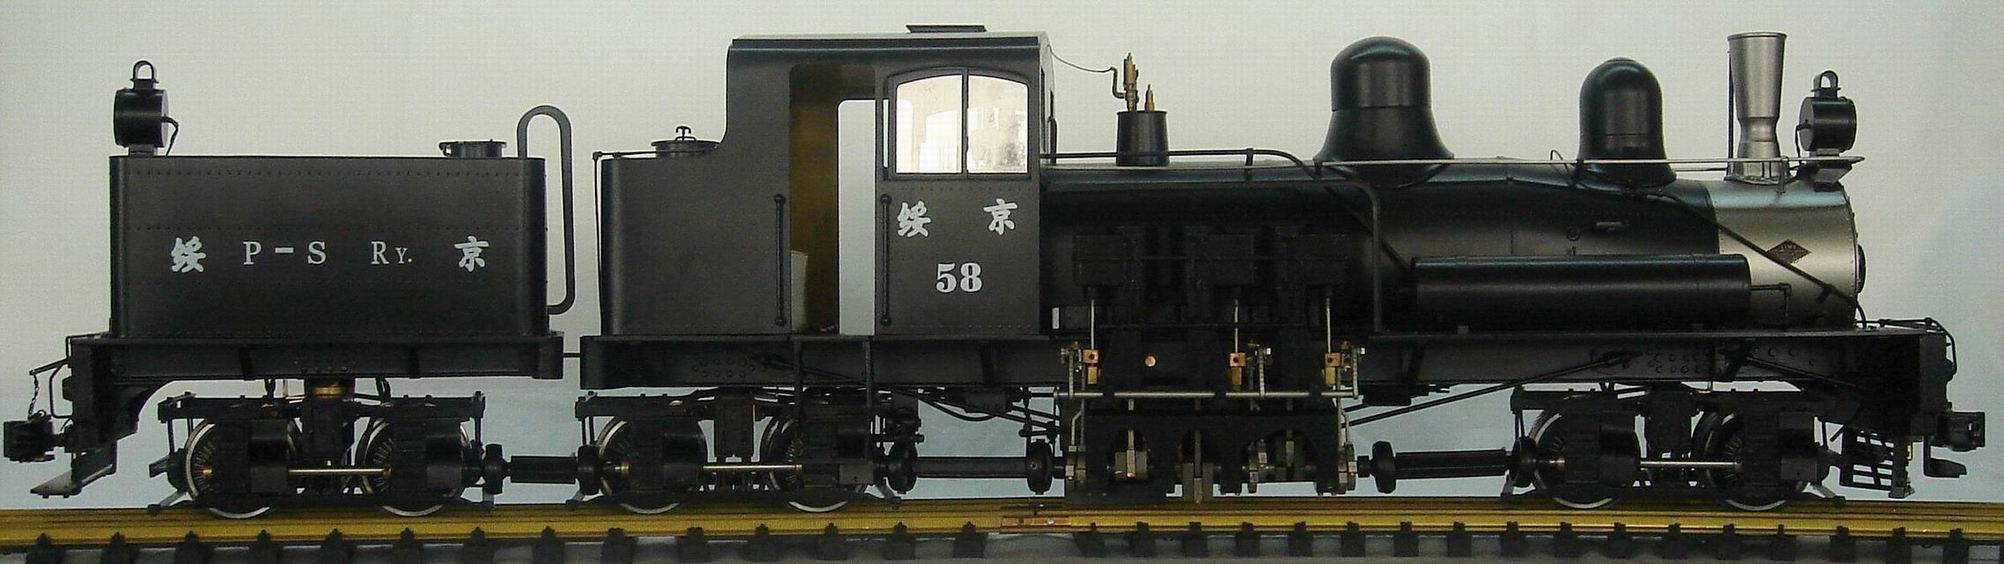 1:20.3 electric train model toy